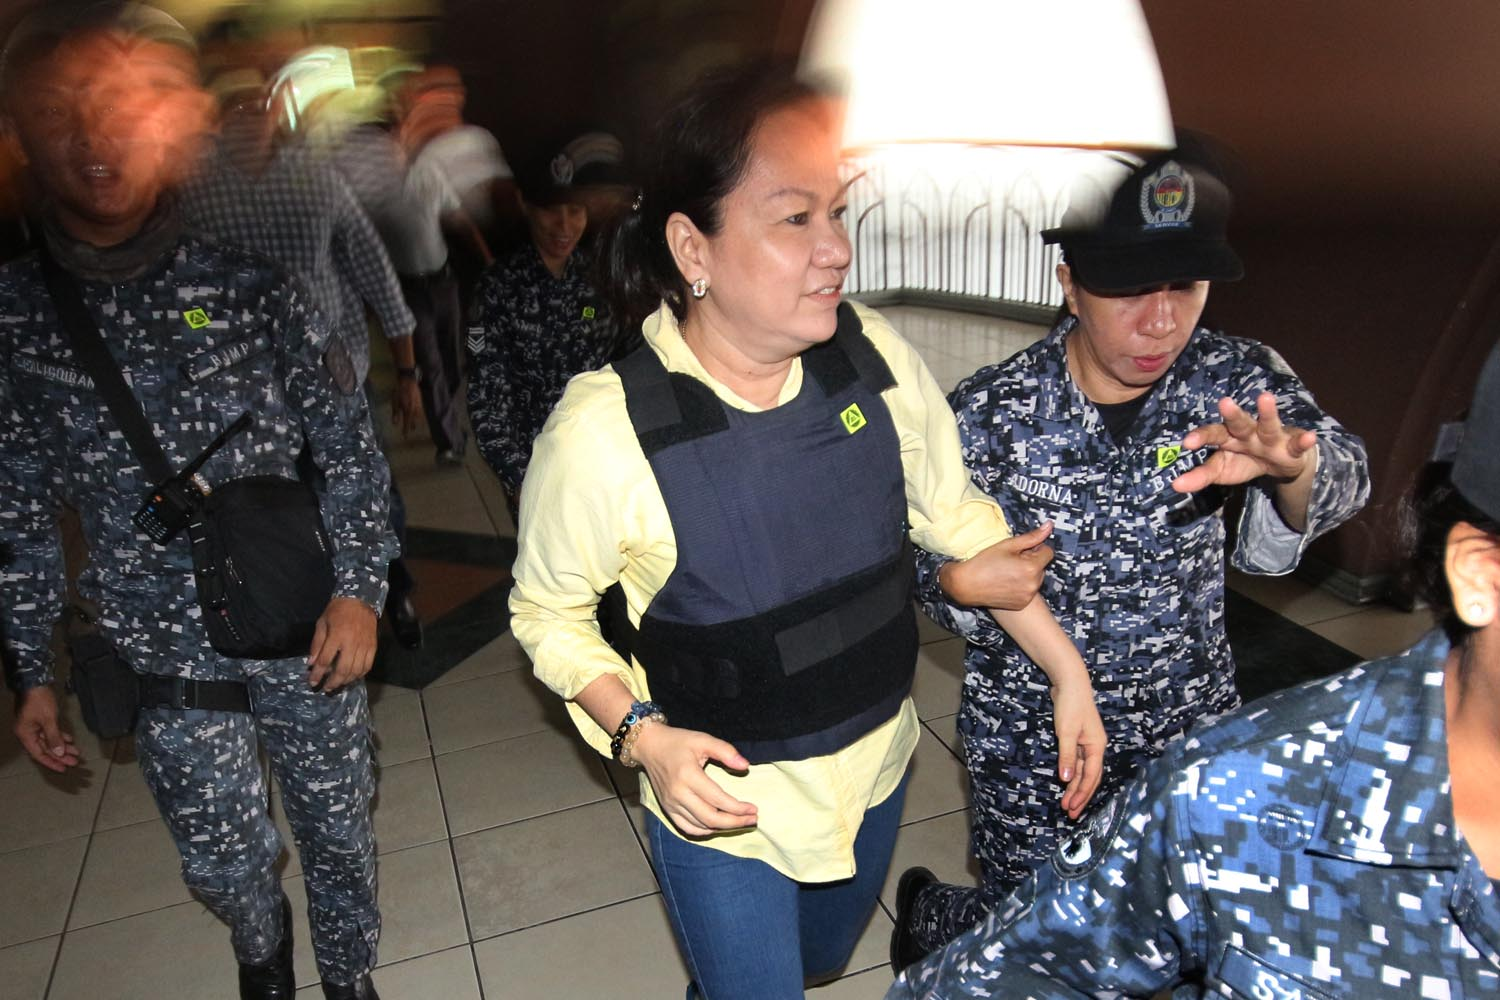 PORK SCAM. Alleged pork barrel scam mastermind Janet Lim-Napoles attends a hearing at the Sandiganbayan in Quezon City on Thursday, June 15, 2017. Photo by Darren Langit/Rappler